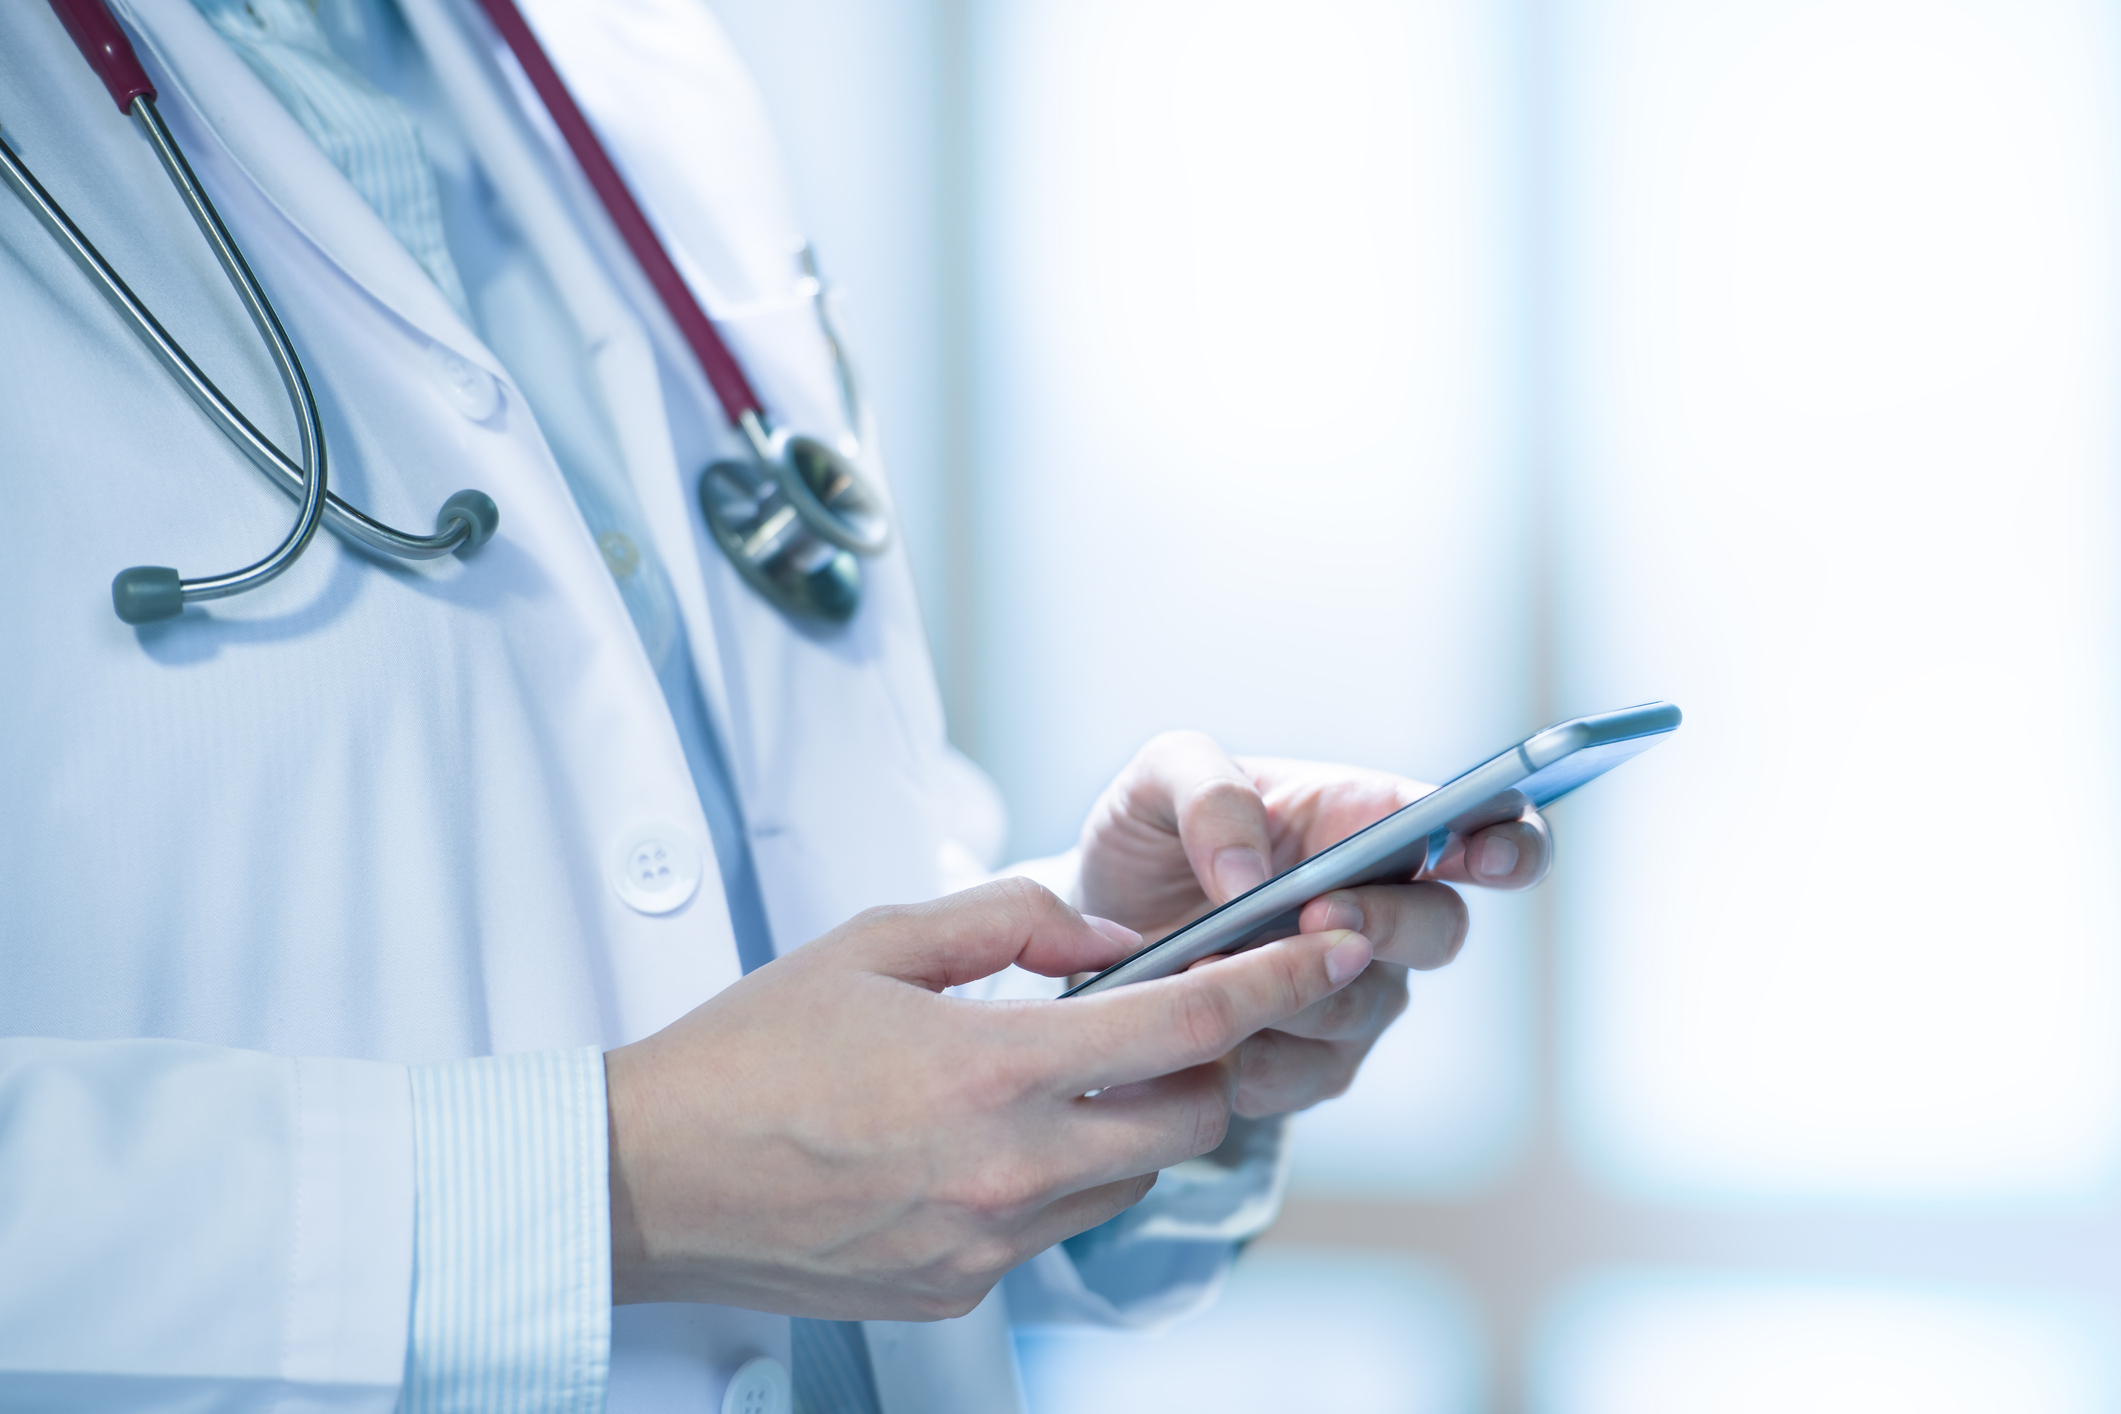 Medical doctor using smart phone for work in hospital. Image credit: iStock